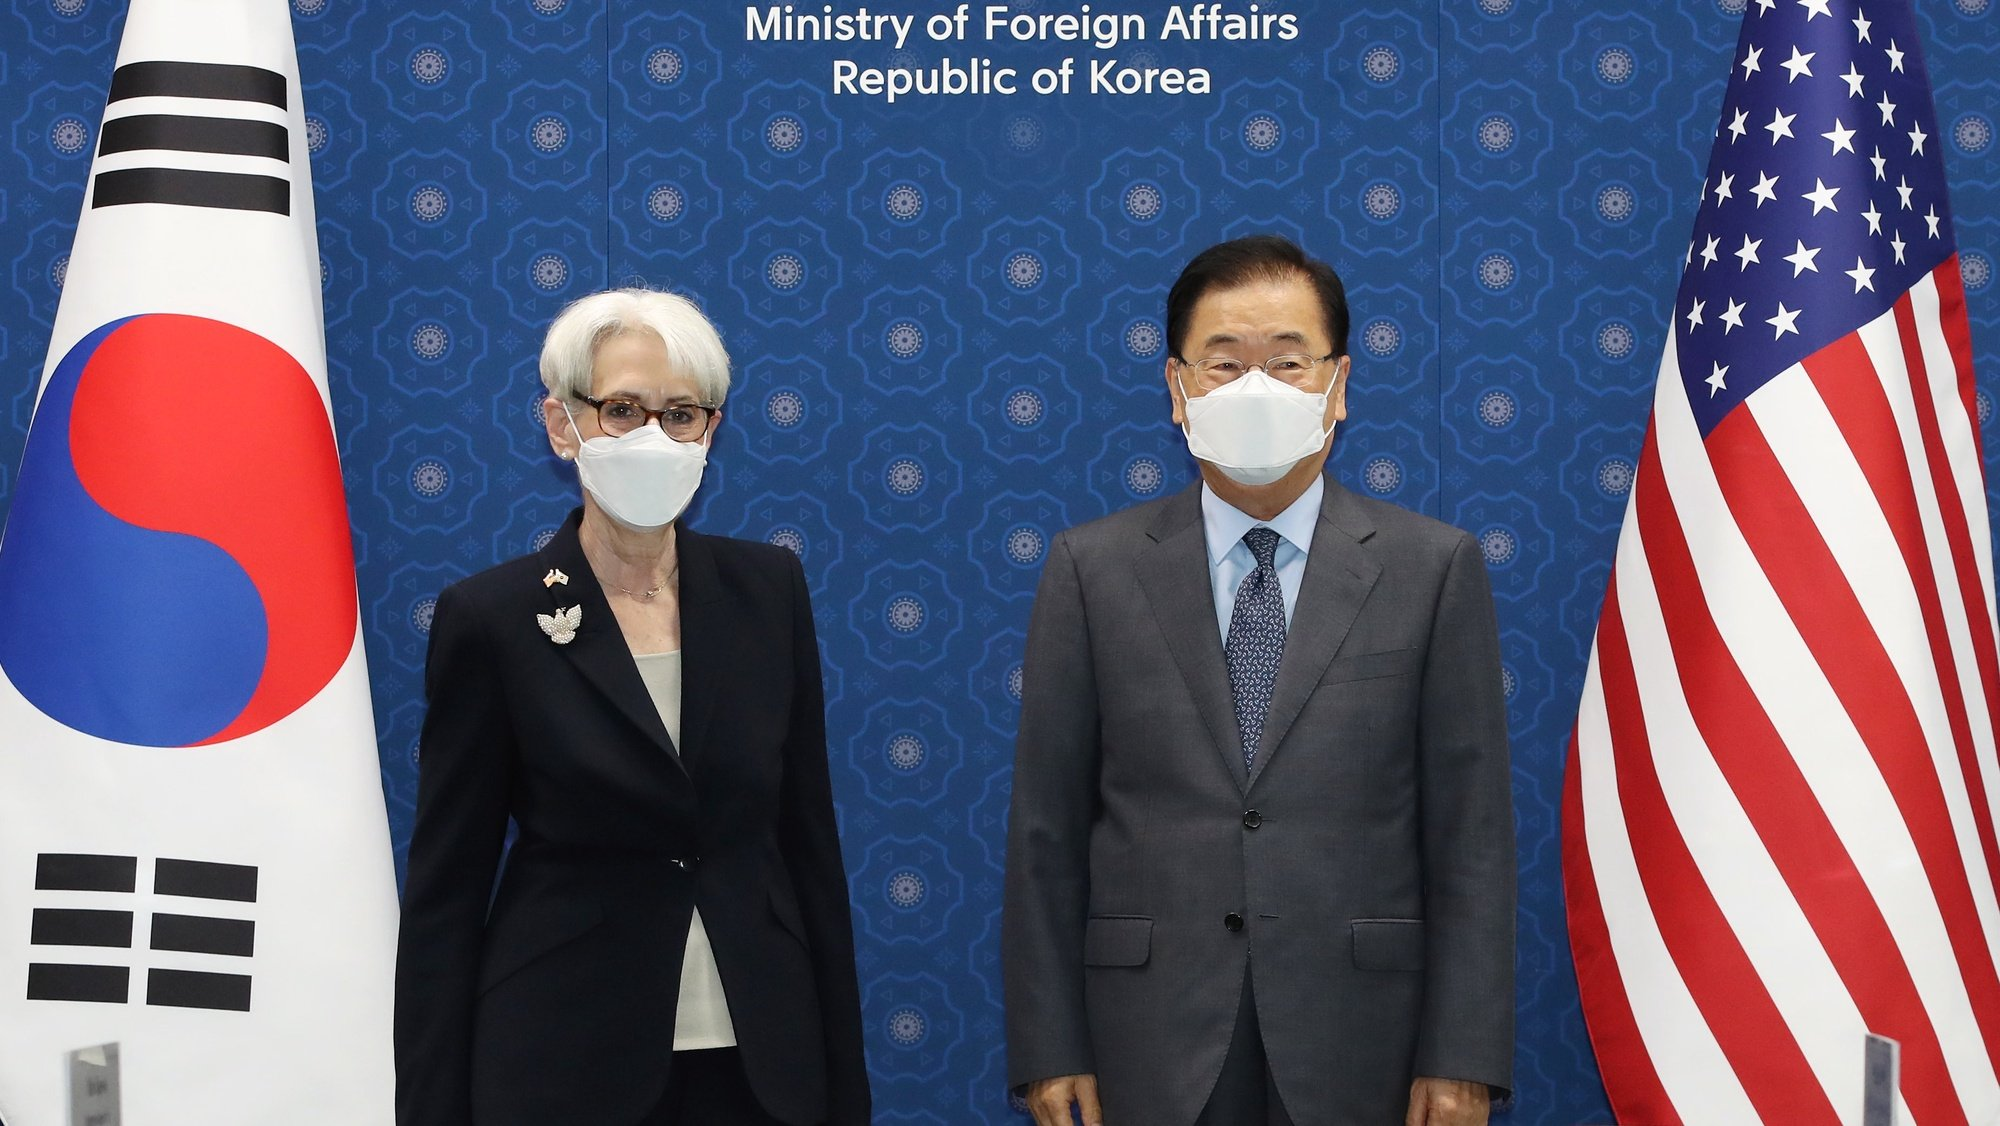 epa09357544 South Korean Foreign Minister Chung Eui-yong (R) poses for a photo with US Deputy Secretary of State Wendy Sherman (L) during their meeting at the foreign ministry in Seoul, South Korea, 22 July 2021.  EPA/YONHAP SOUTH KOREA OUT